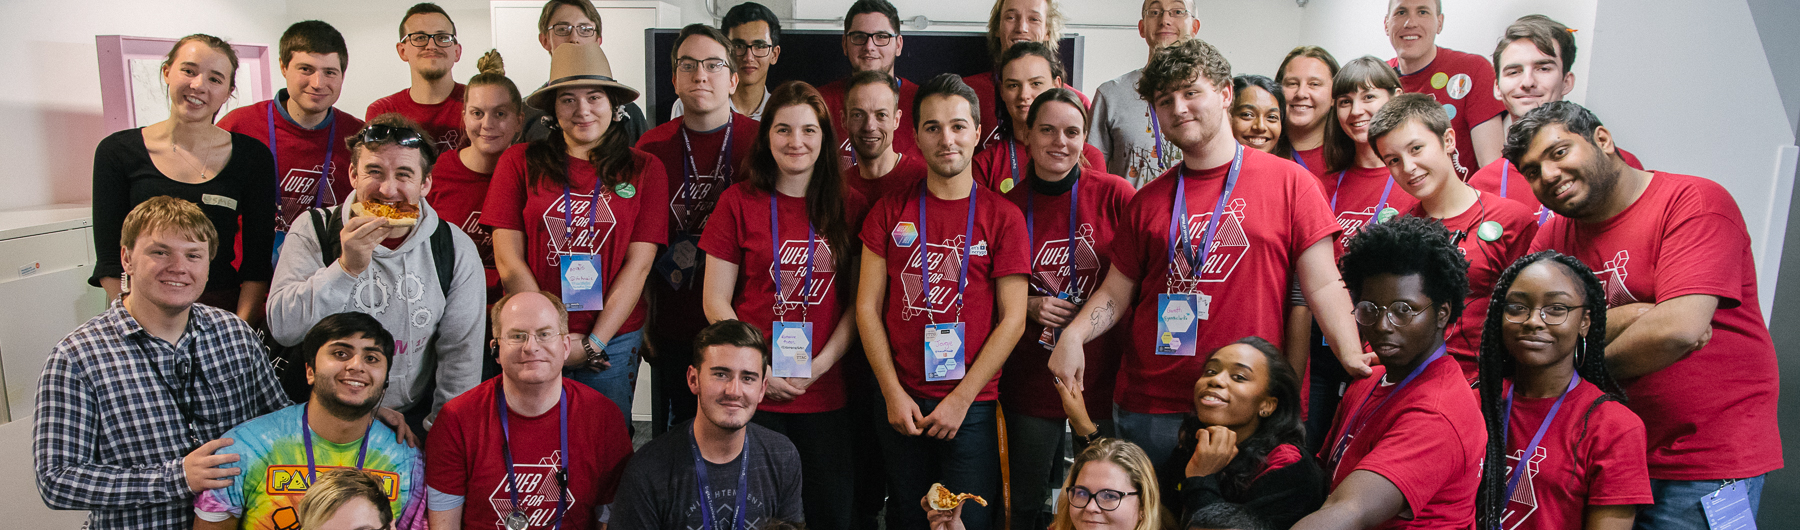 MozFest Volunteer Program 2018